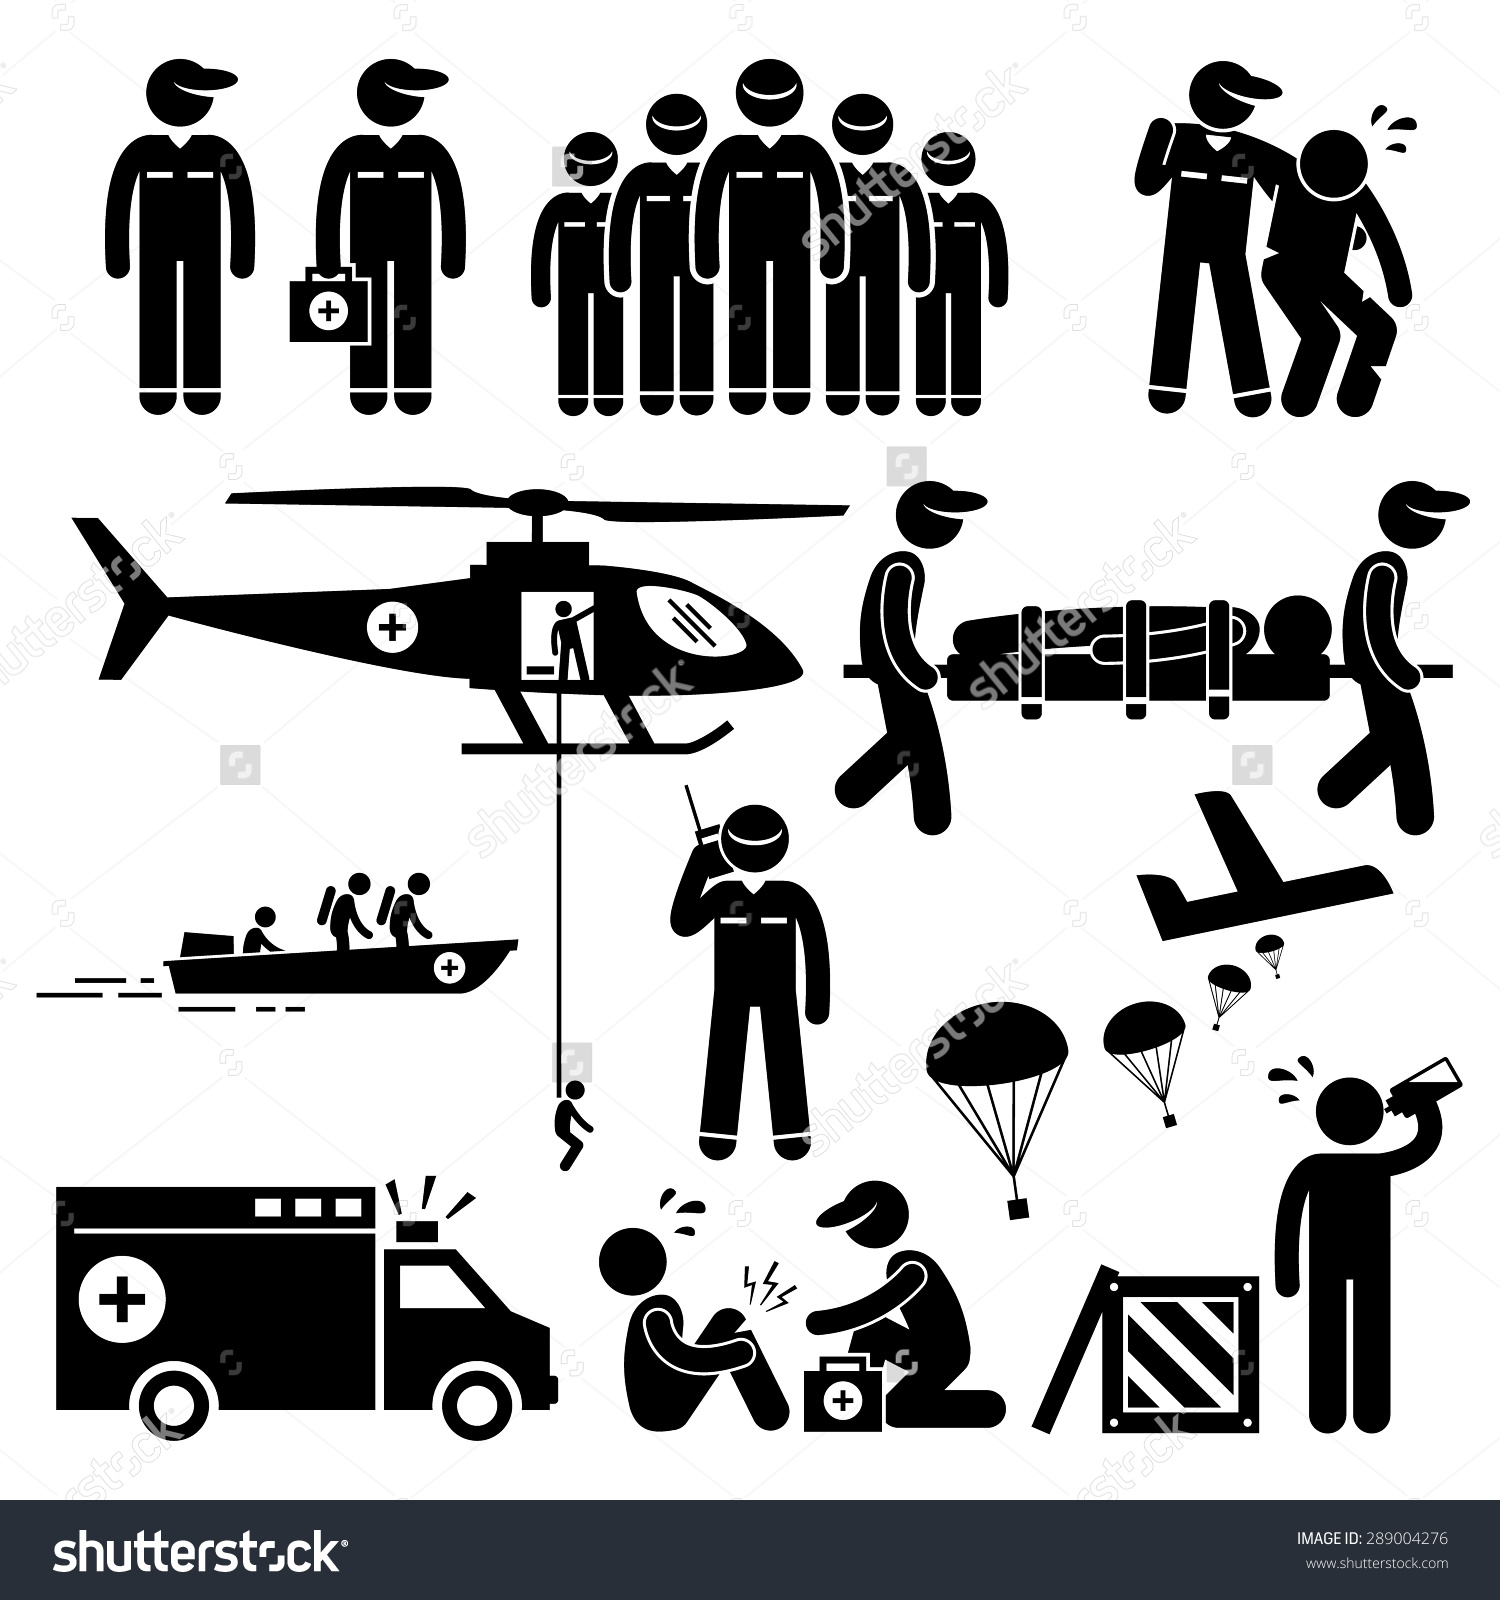 Emergency Rescue Team Stick Figure Pictogram Stock Vector.